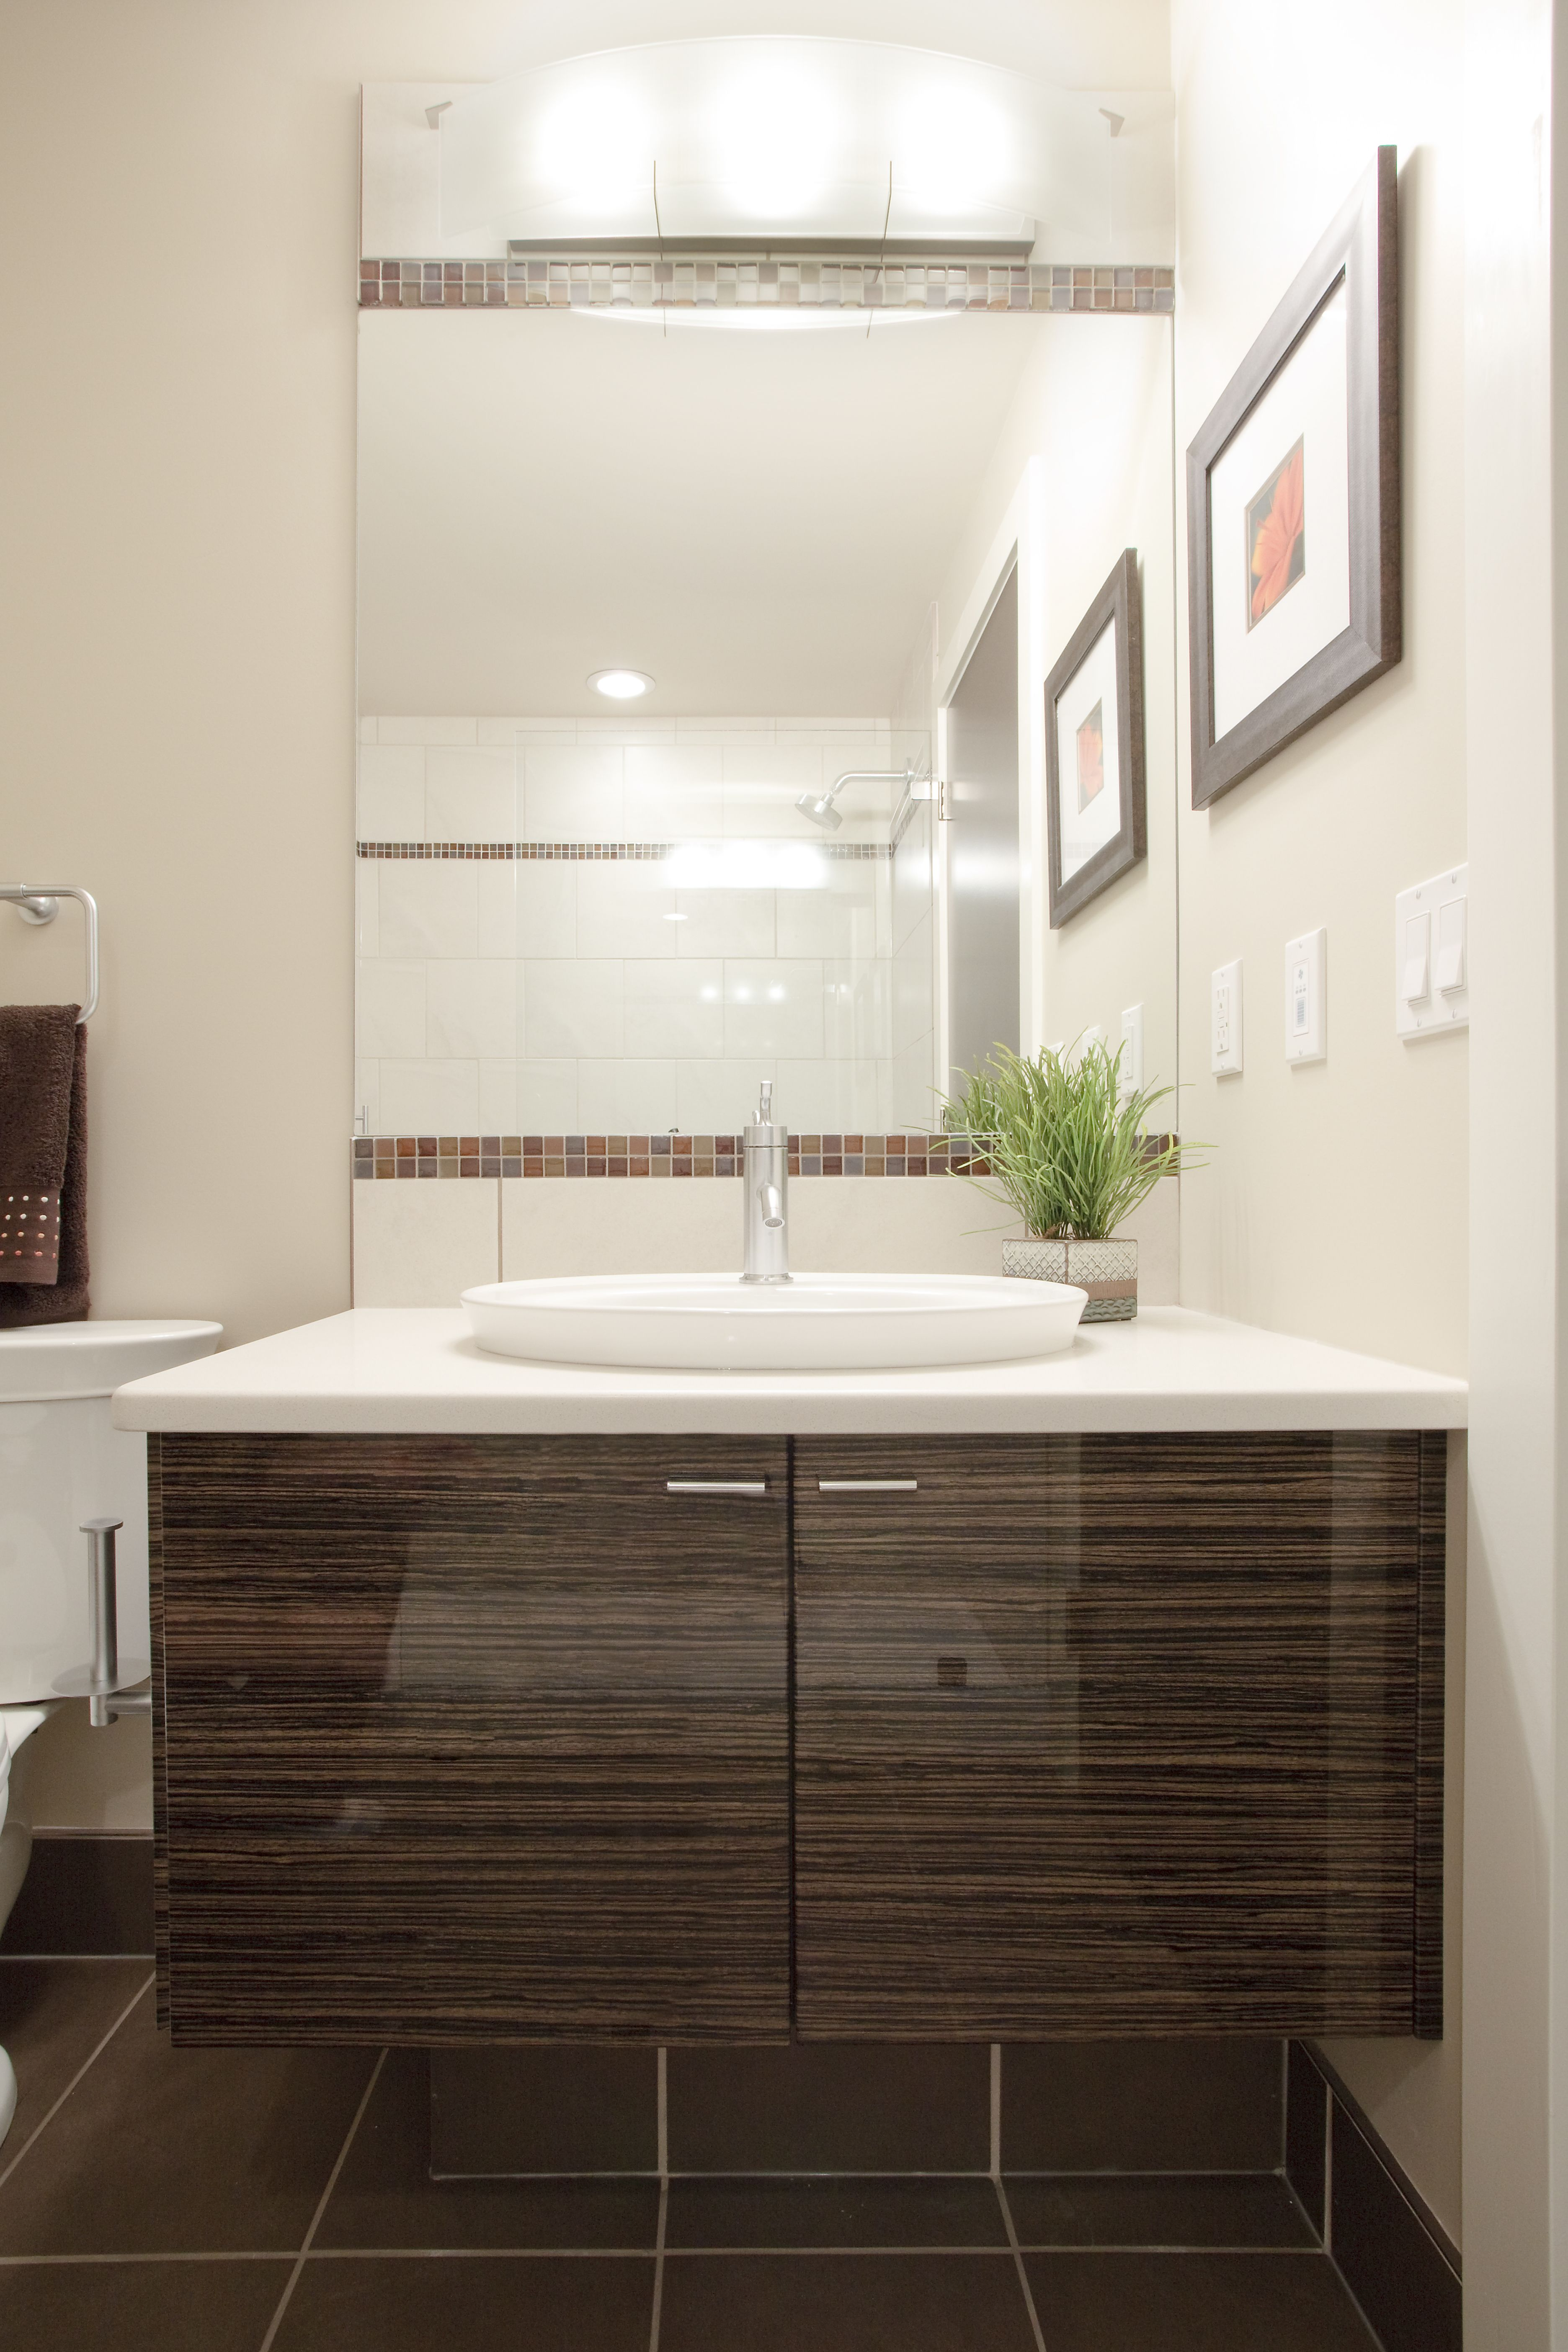 Kitchen Cabinets Bathroom Vanities Bathroom Cabinets In An Extensive Range Of Designs And Finishes C Bathroom Vanity Contemporary Bathrooms Kitchen Cabinets